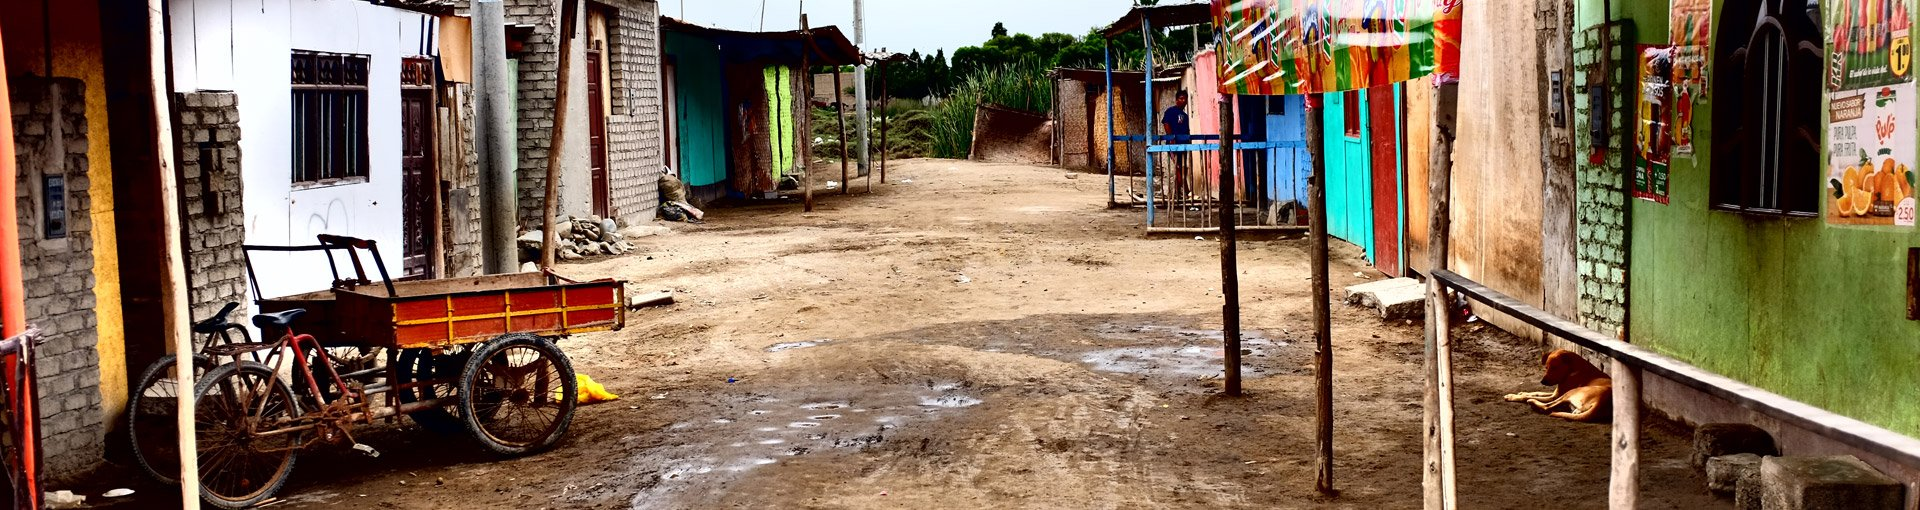 A street in Chimbote